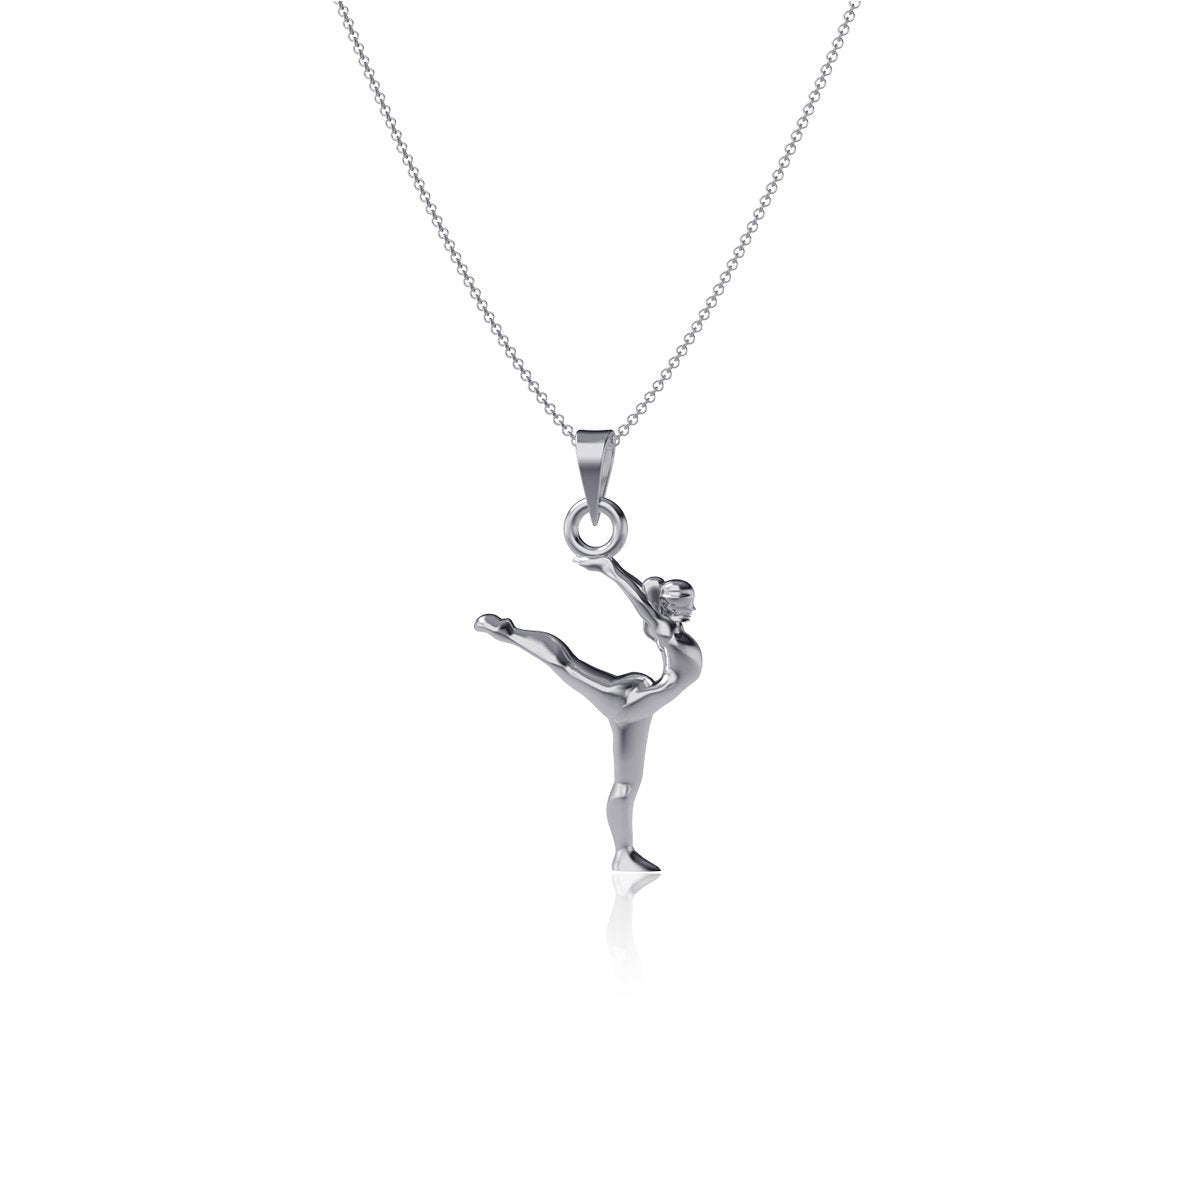 Gymnastics Pendant Necklace